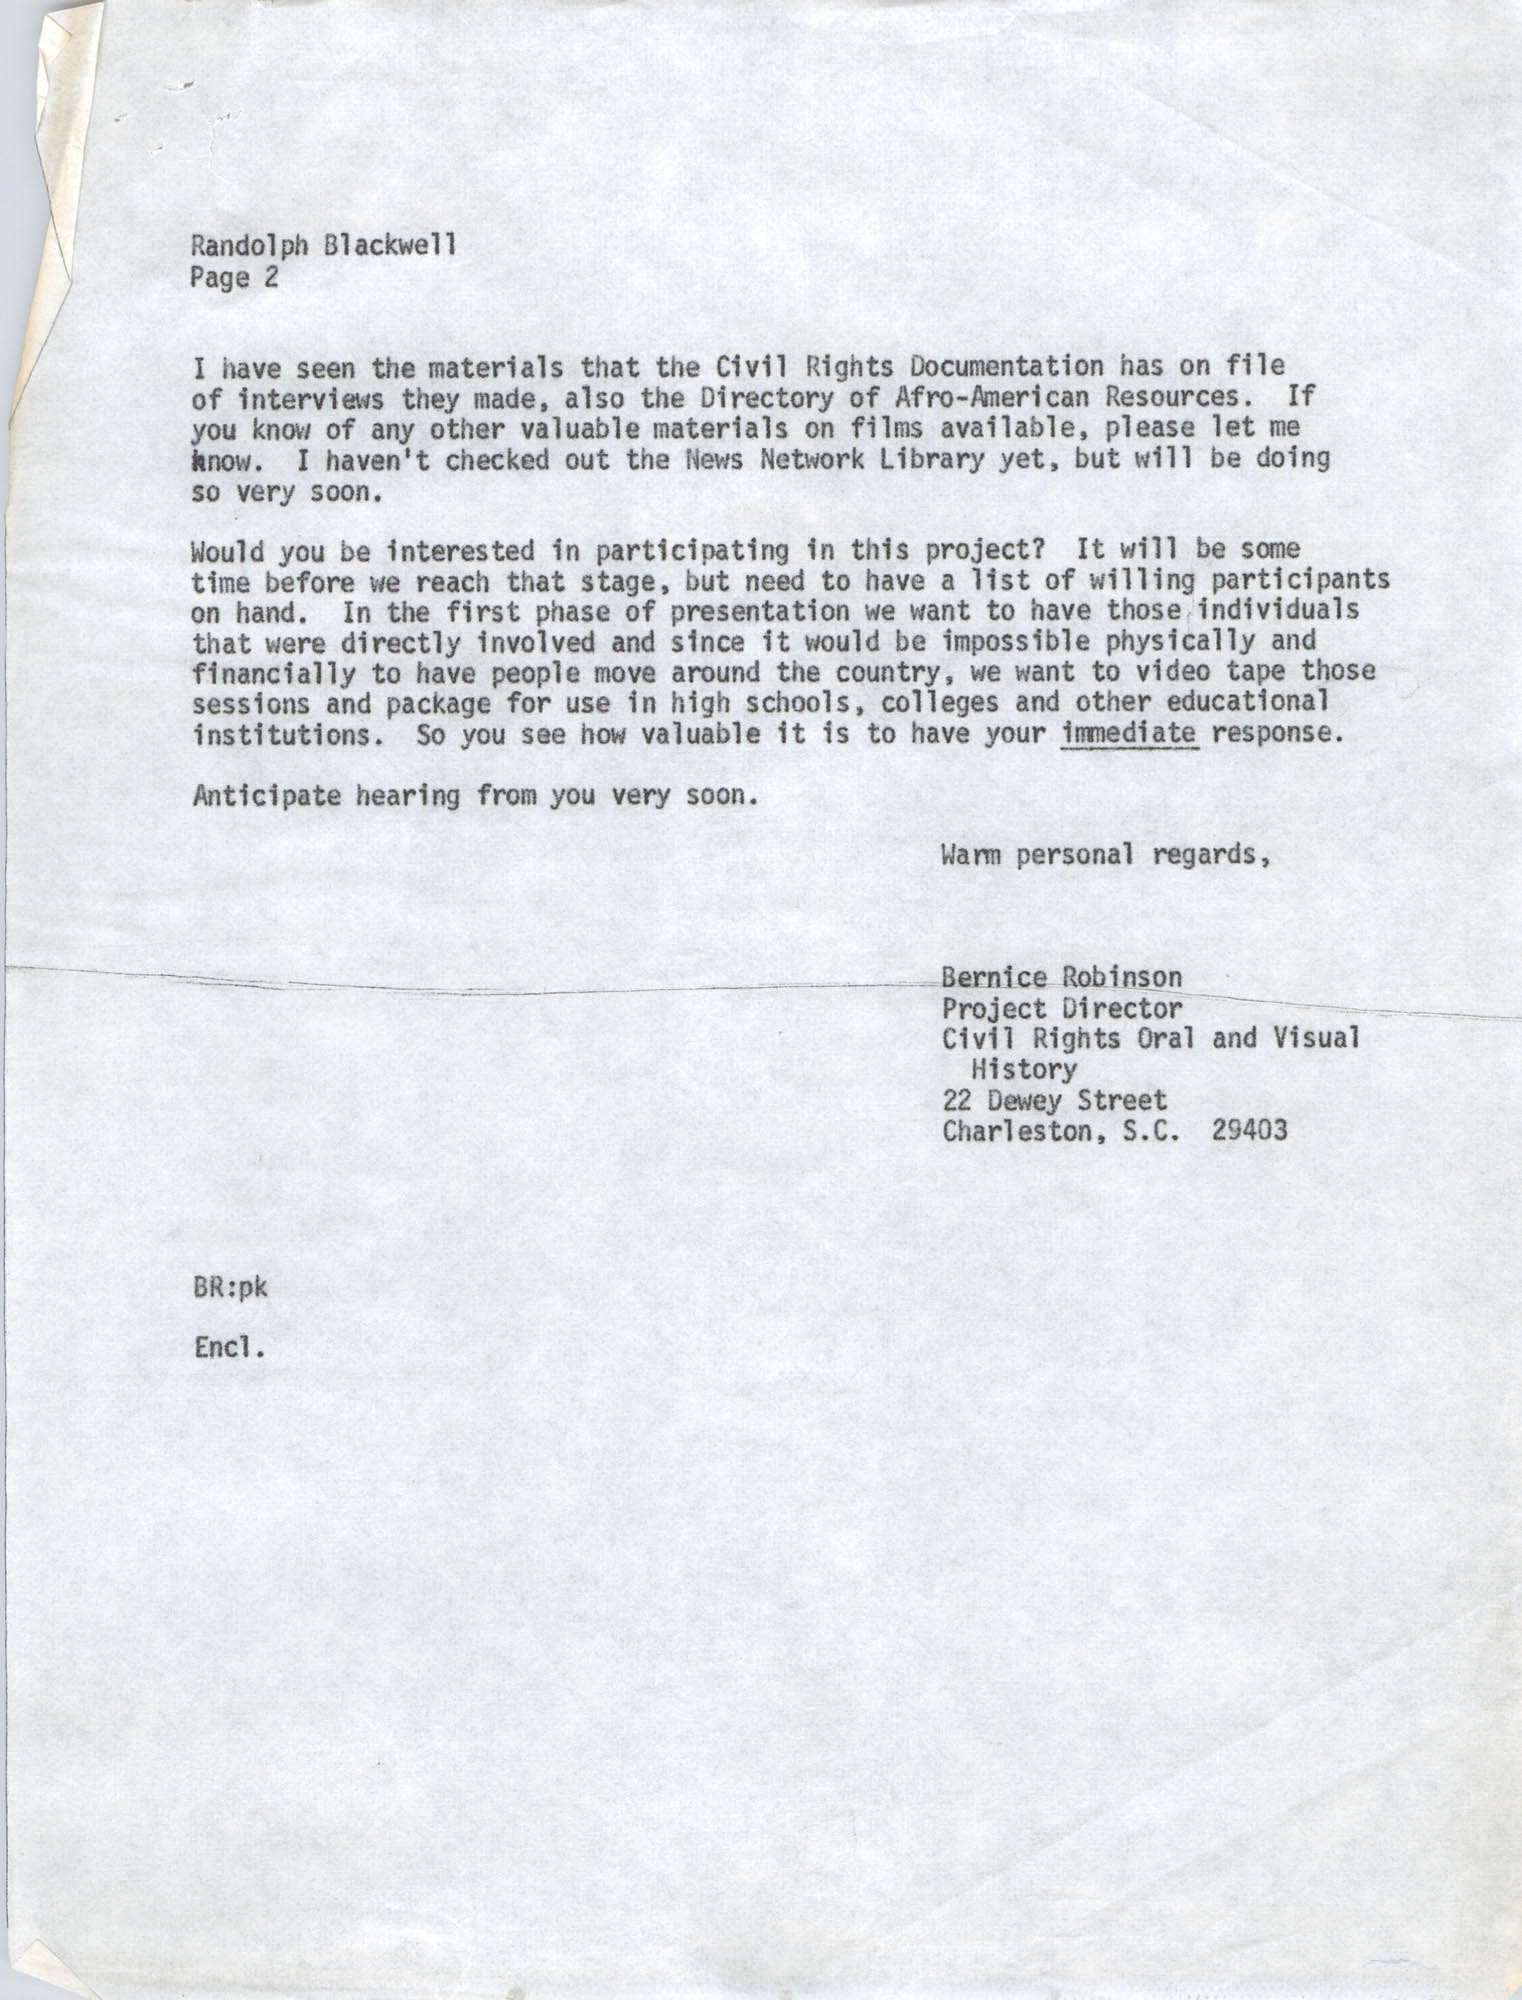 Letter from Bernice Robinson to Randolph Blackwell, May 7, 1973, Draft Page 2